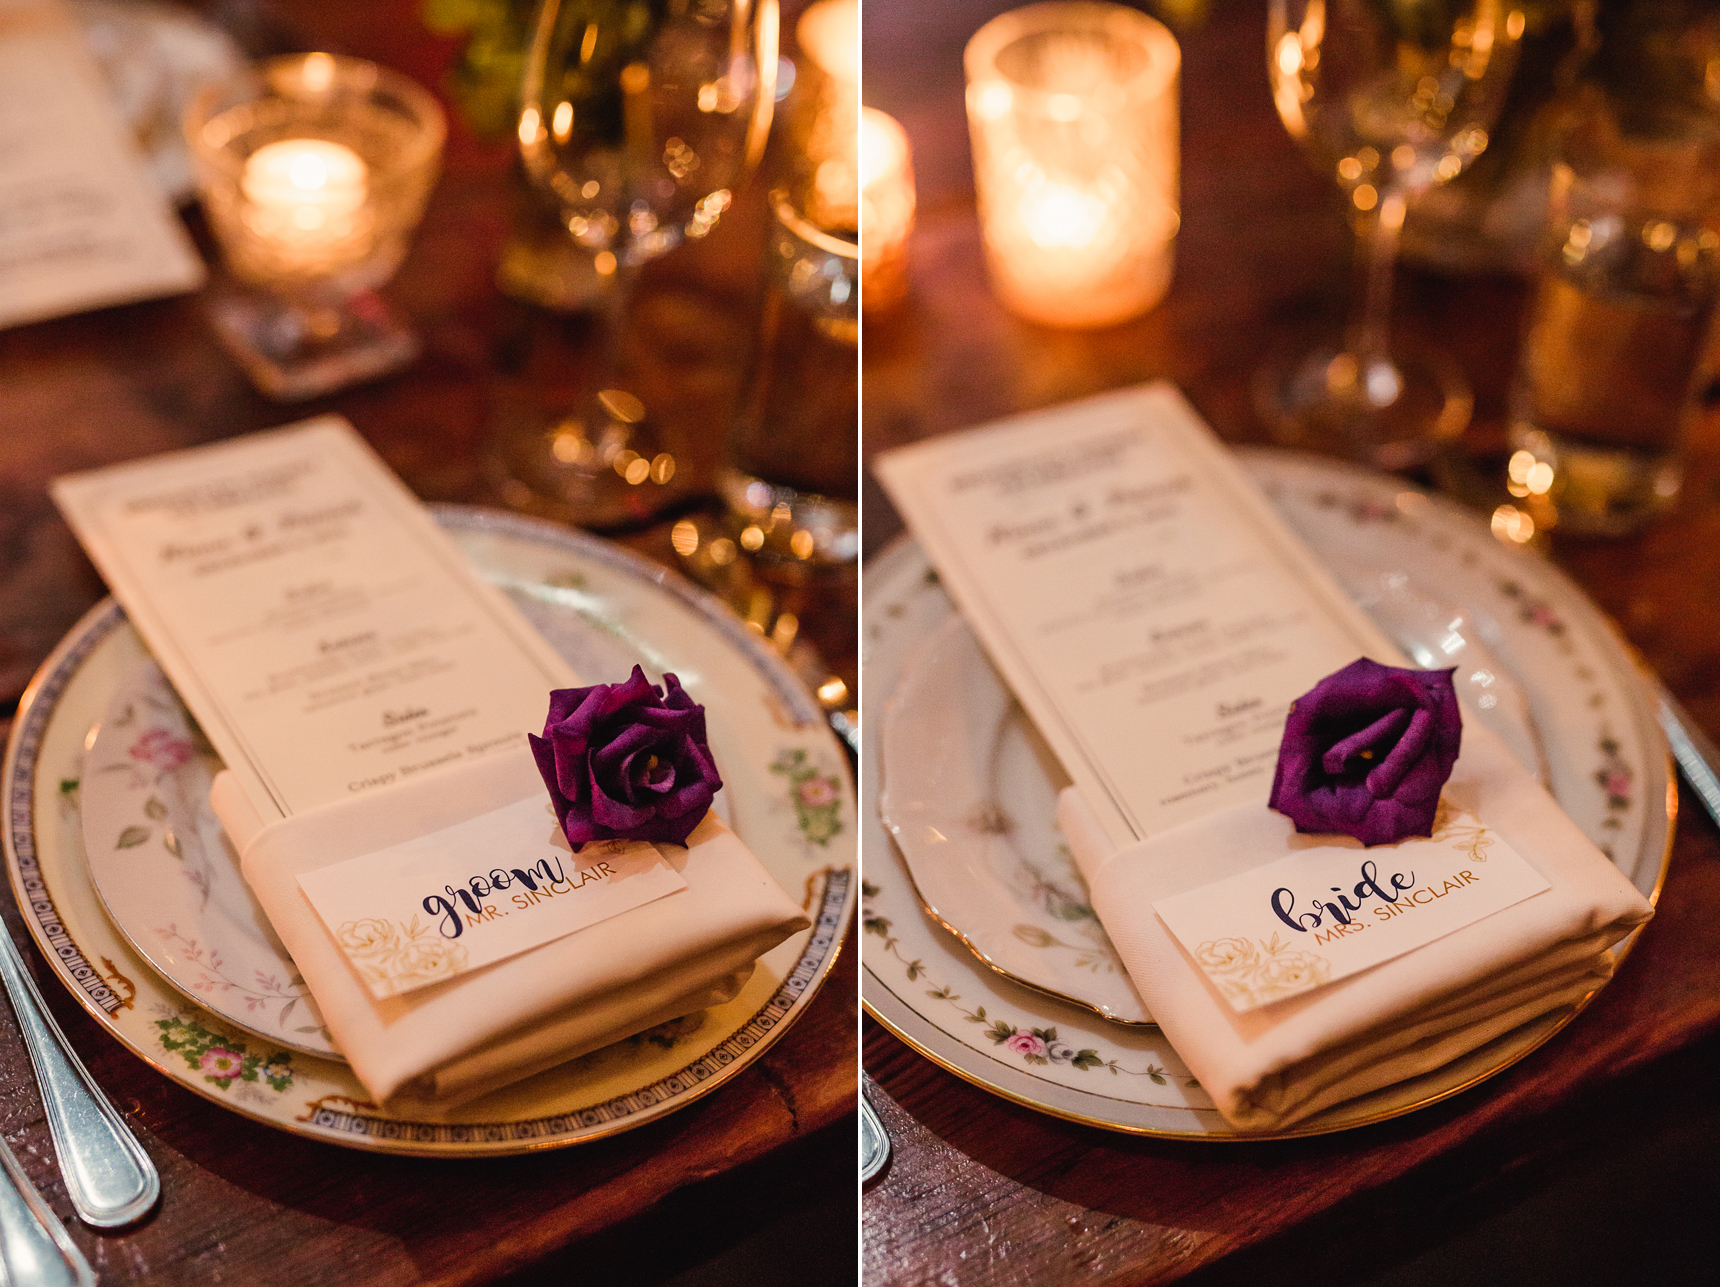 KP_BrooklynWinery_Wedding_NewYork_Photographer105.jpg